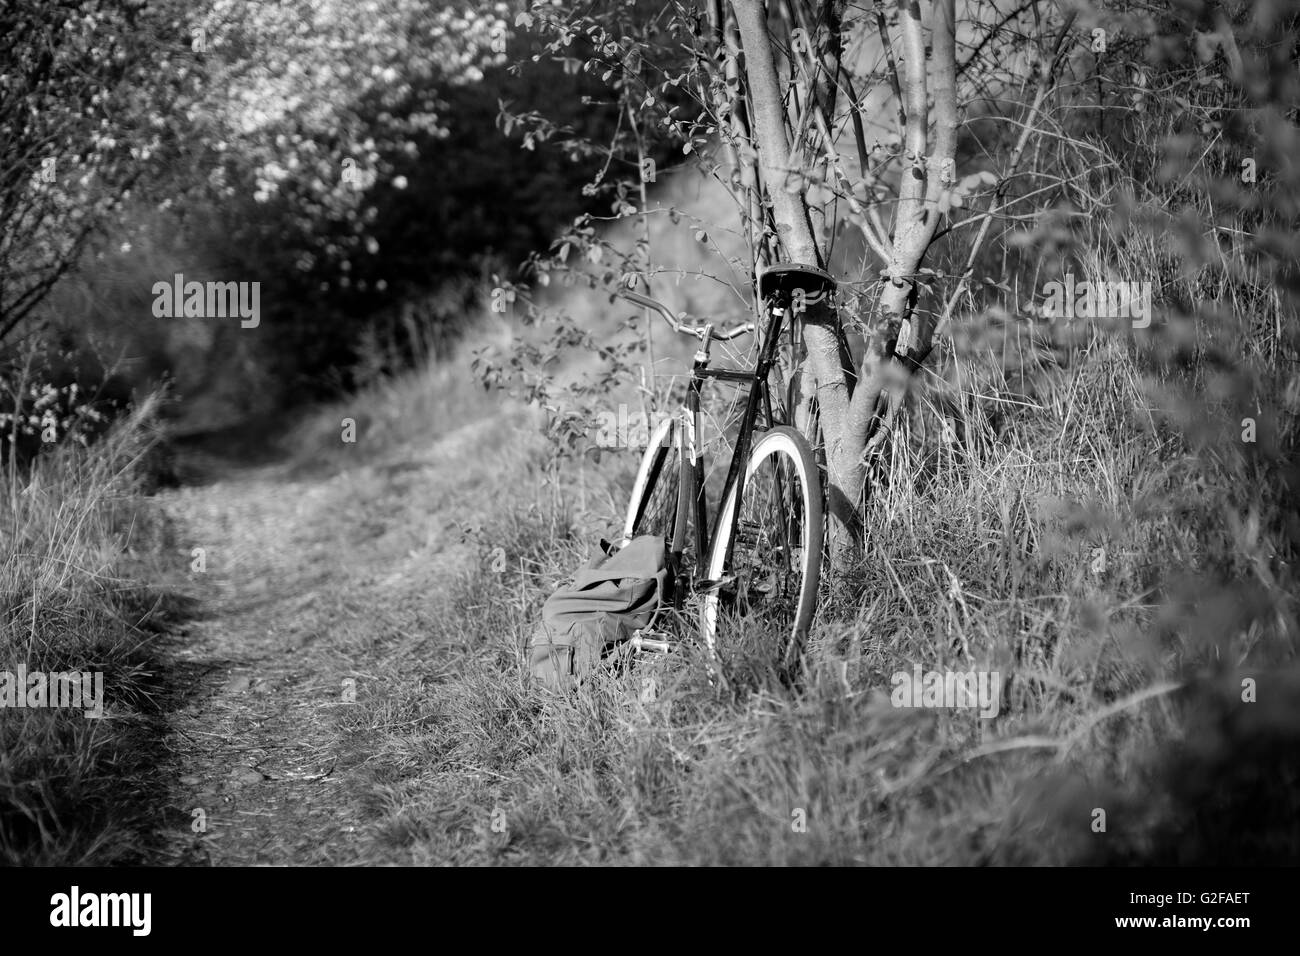 Bicycle Parked on Side of Path - Stock Image